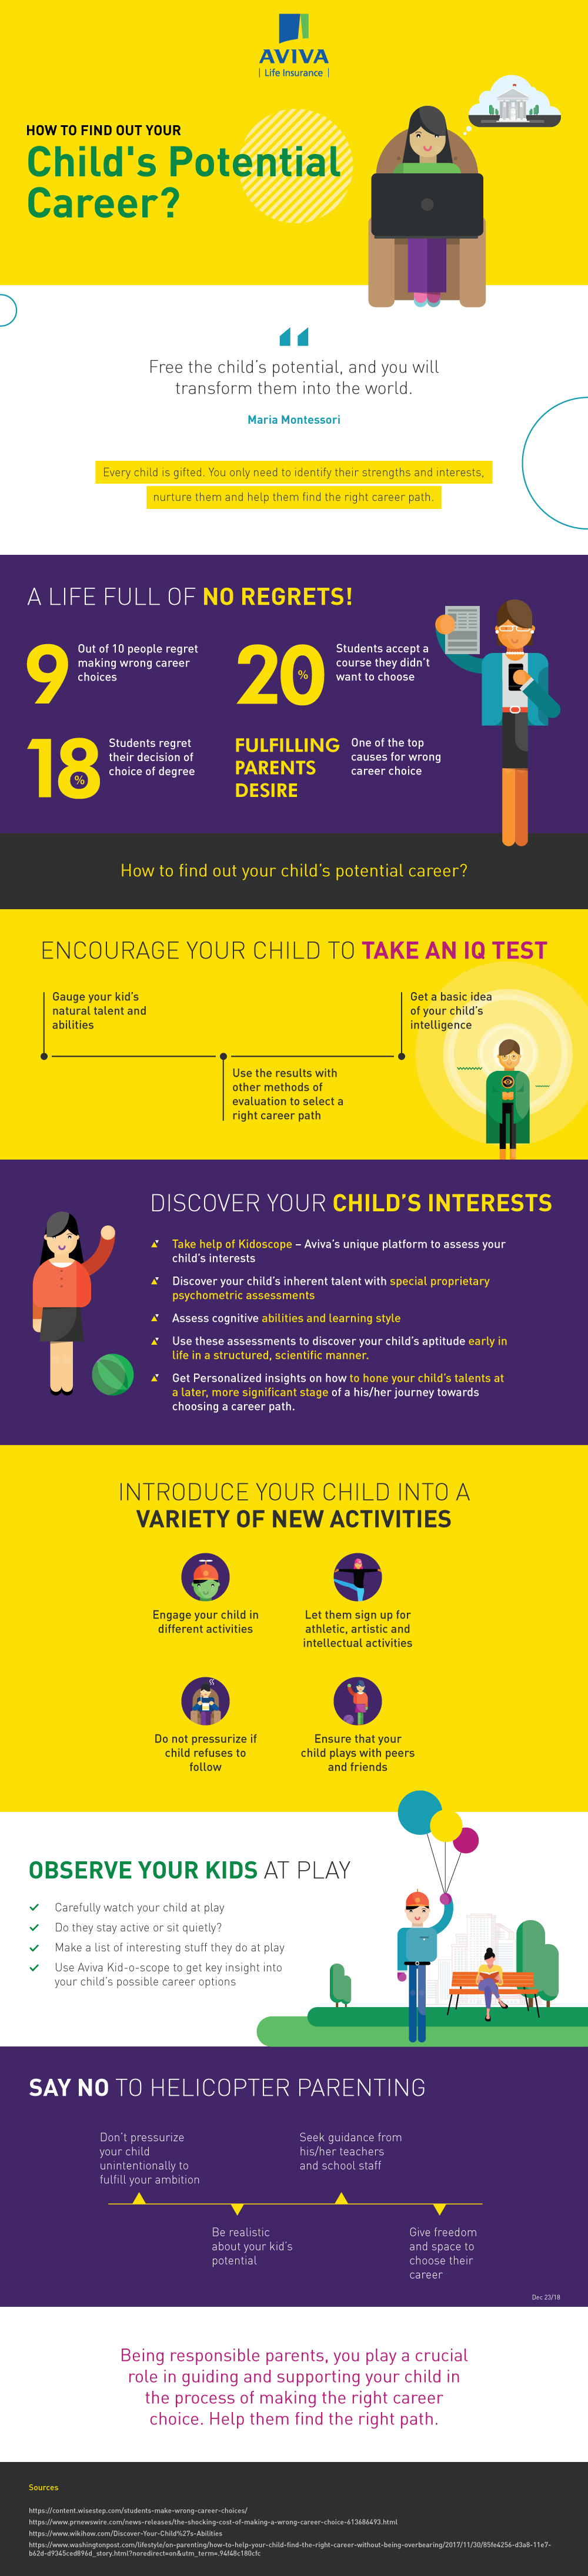 How to Find Out Your Child's Potential Career?